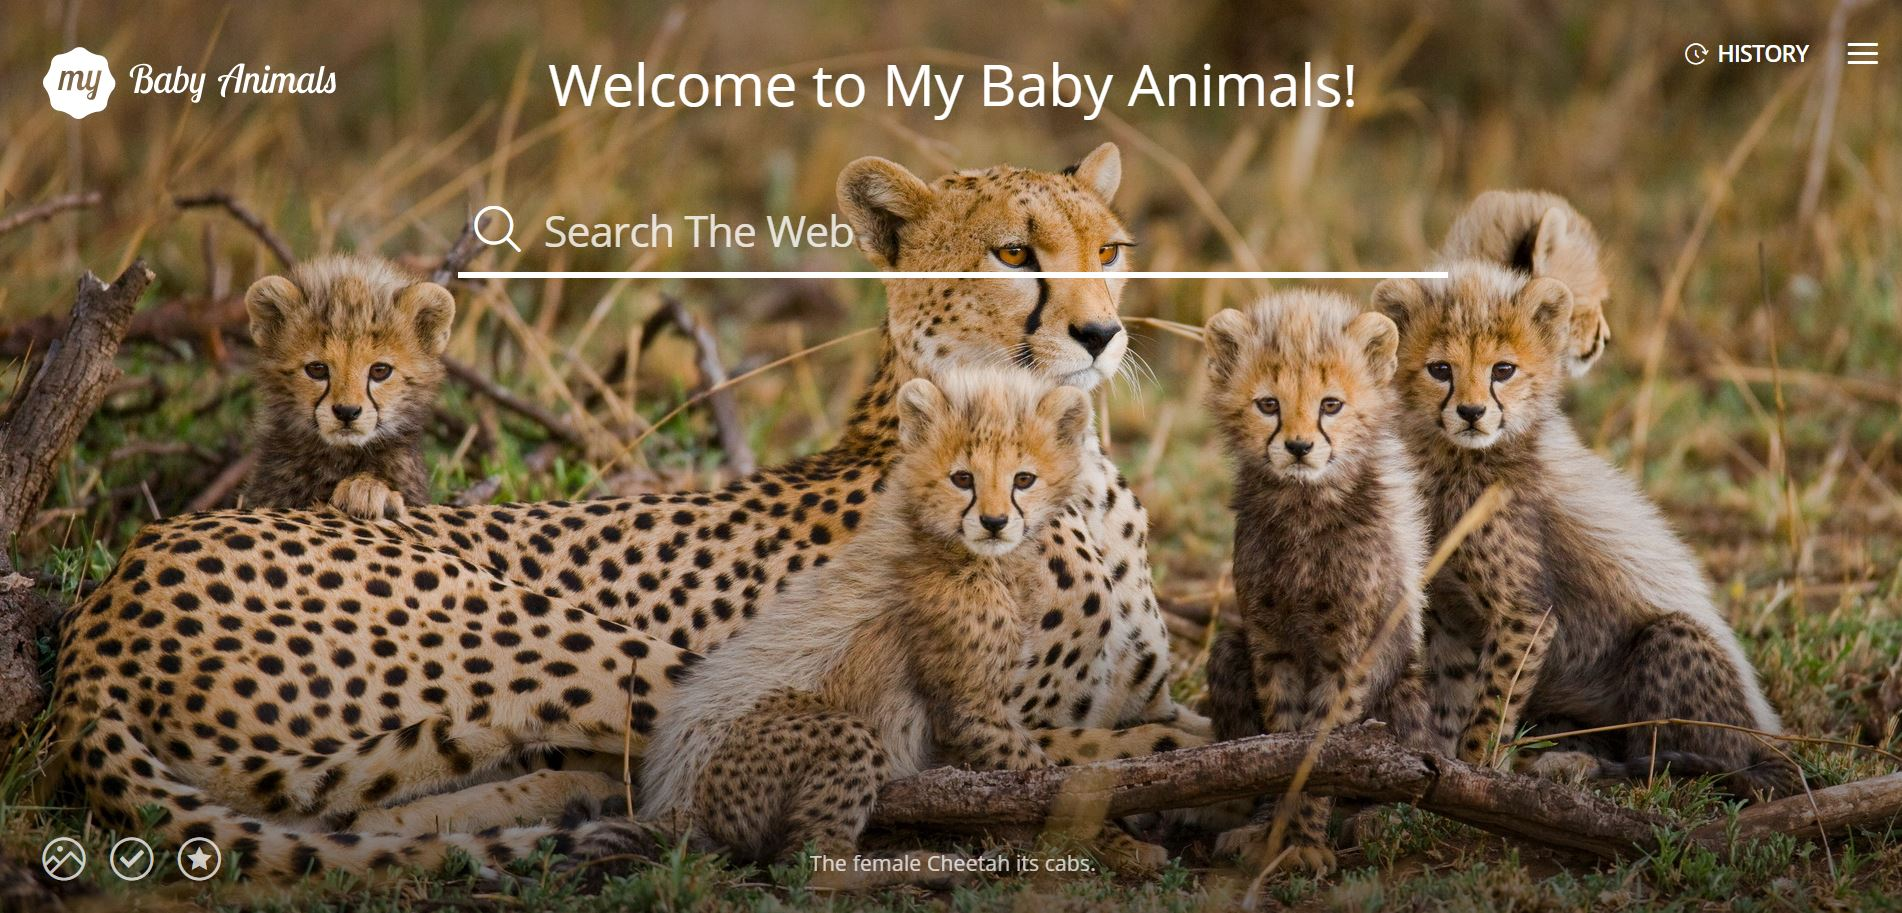 My baby animals images